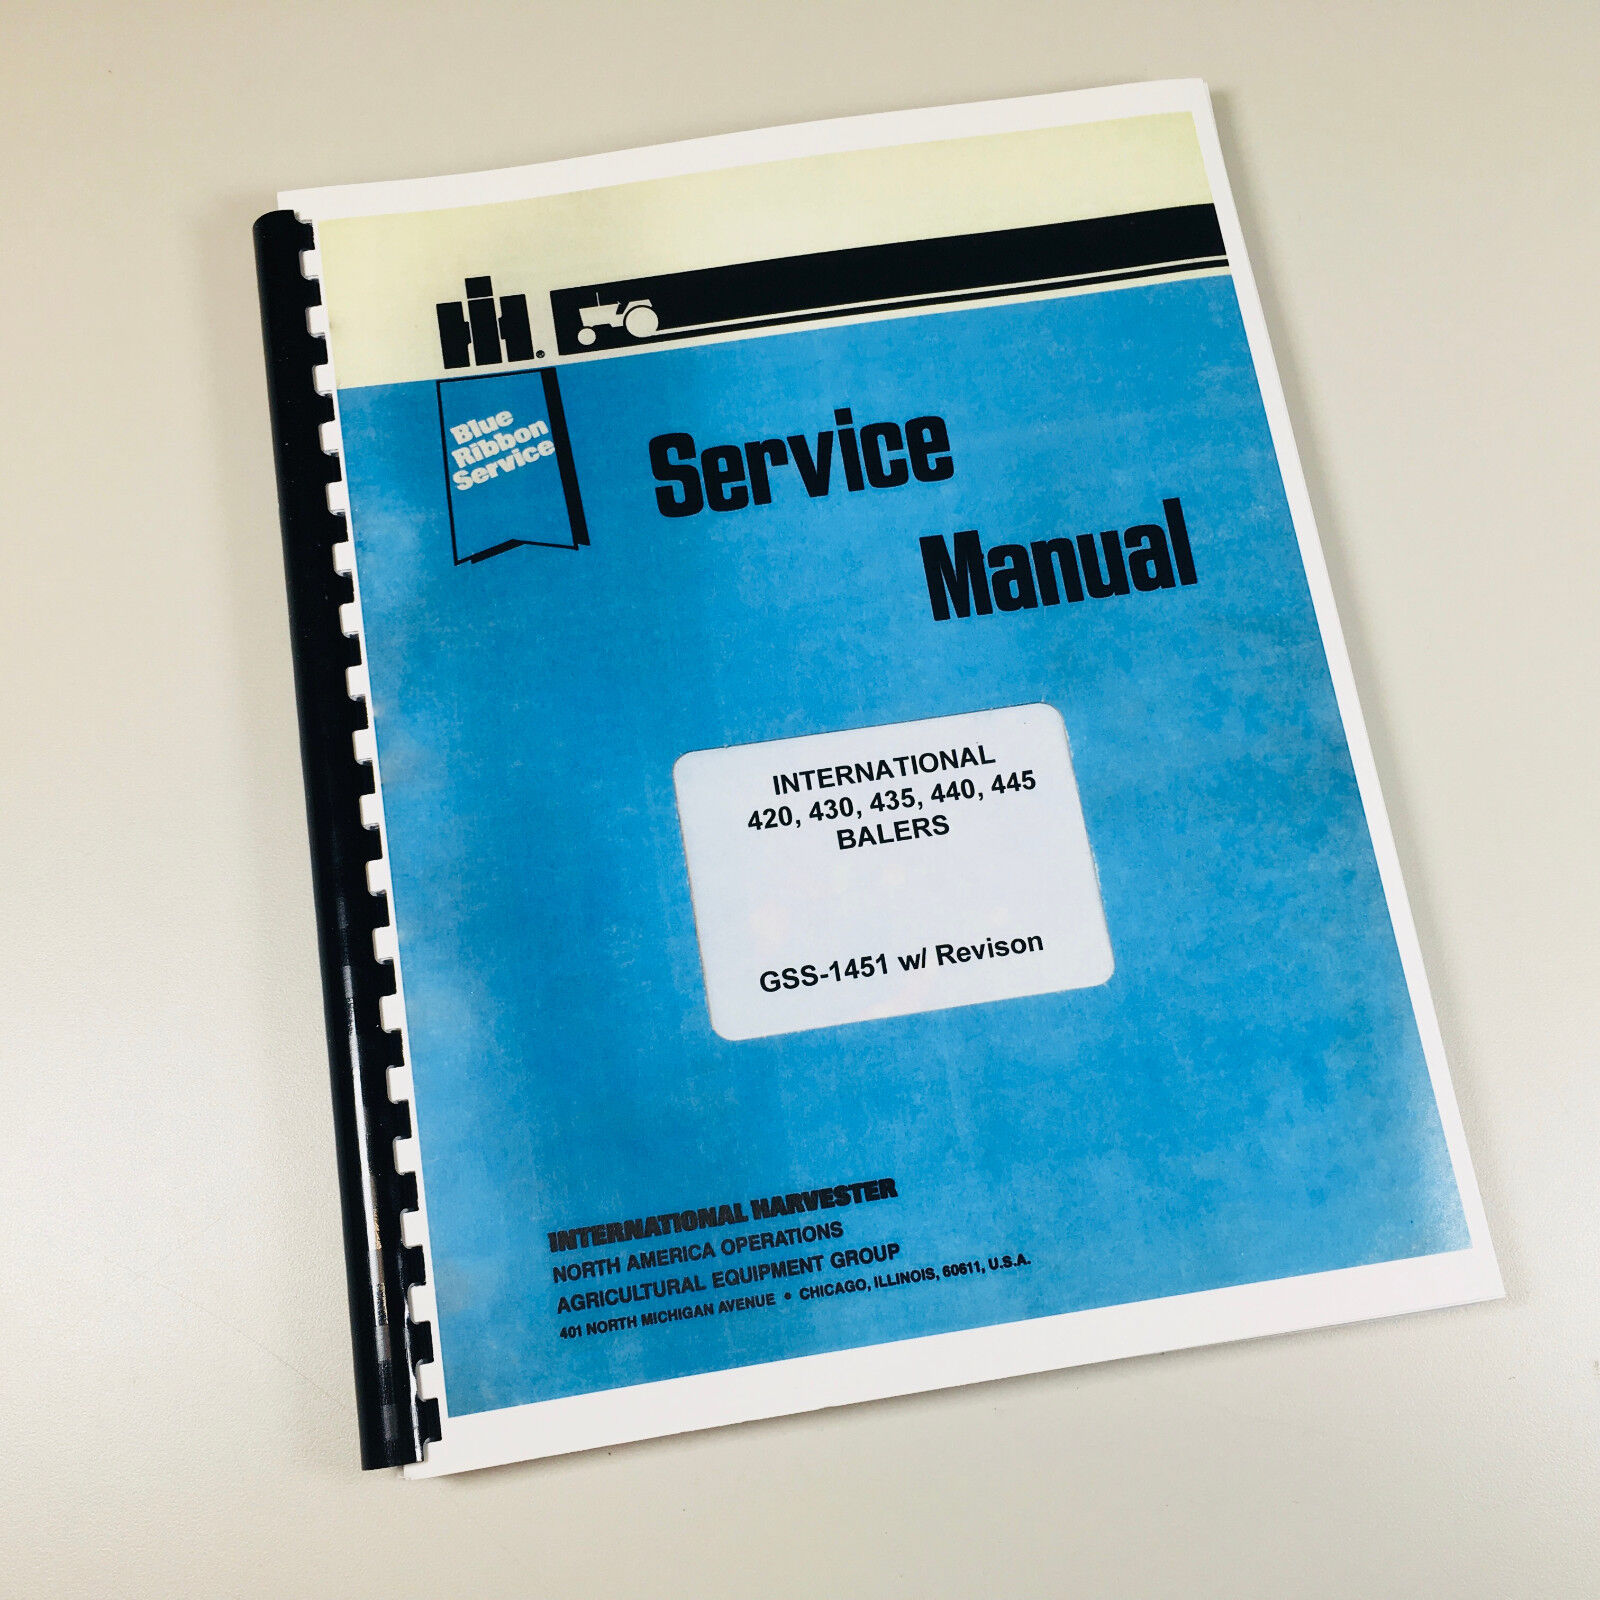 196 pages.....comprehensive manual.....Most complete and up-to-date  original equipment manufacturers manual available. Includes all revisions  if available.